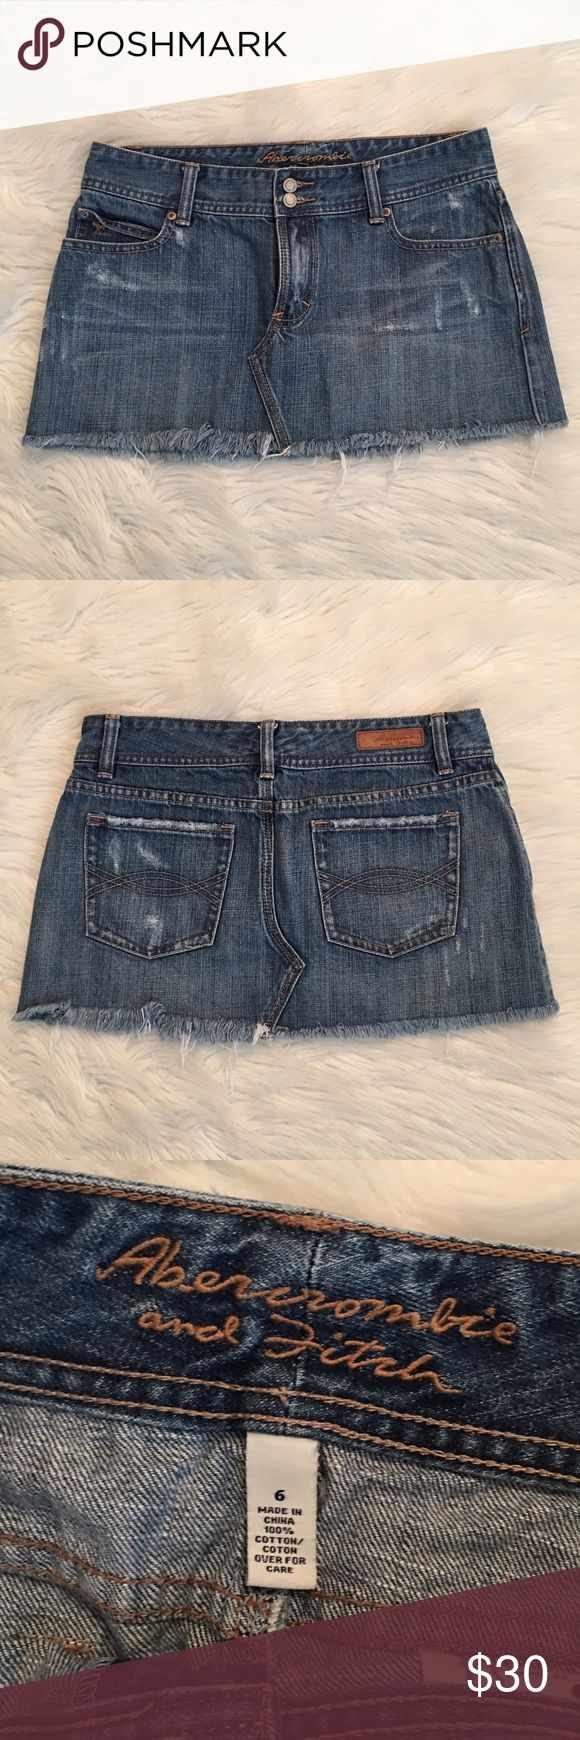 Abercrombie and Fitch Denim Skirt $3.99 shipping! Abercrombie and Fitch Denim Skirt. Size 6 it's in great condition! It look like BRAND NEW! ❌ NO TRADES ❌ Abercrombie & Fitch Skirts